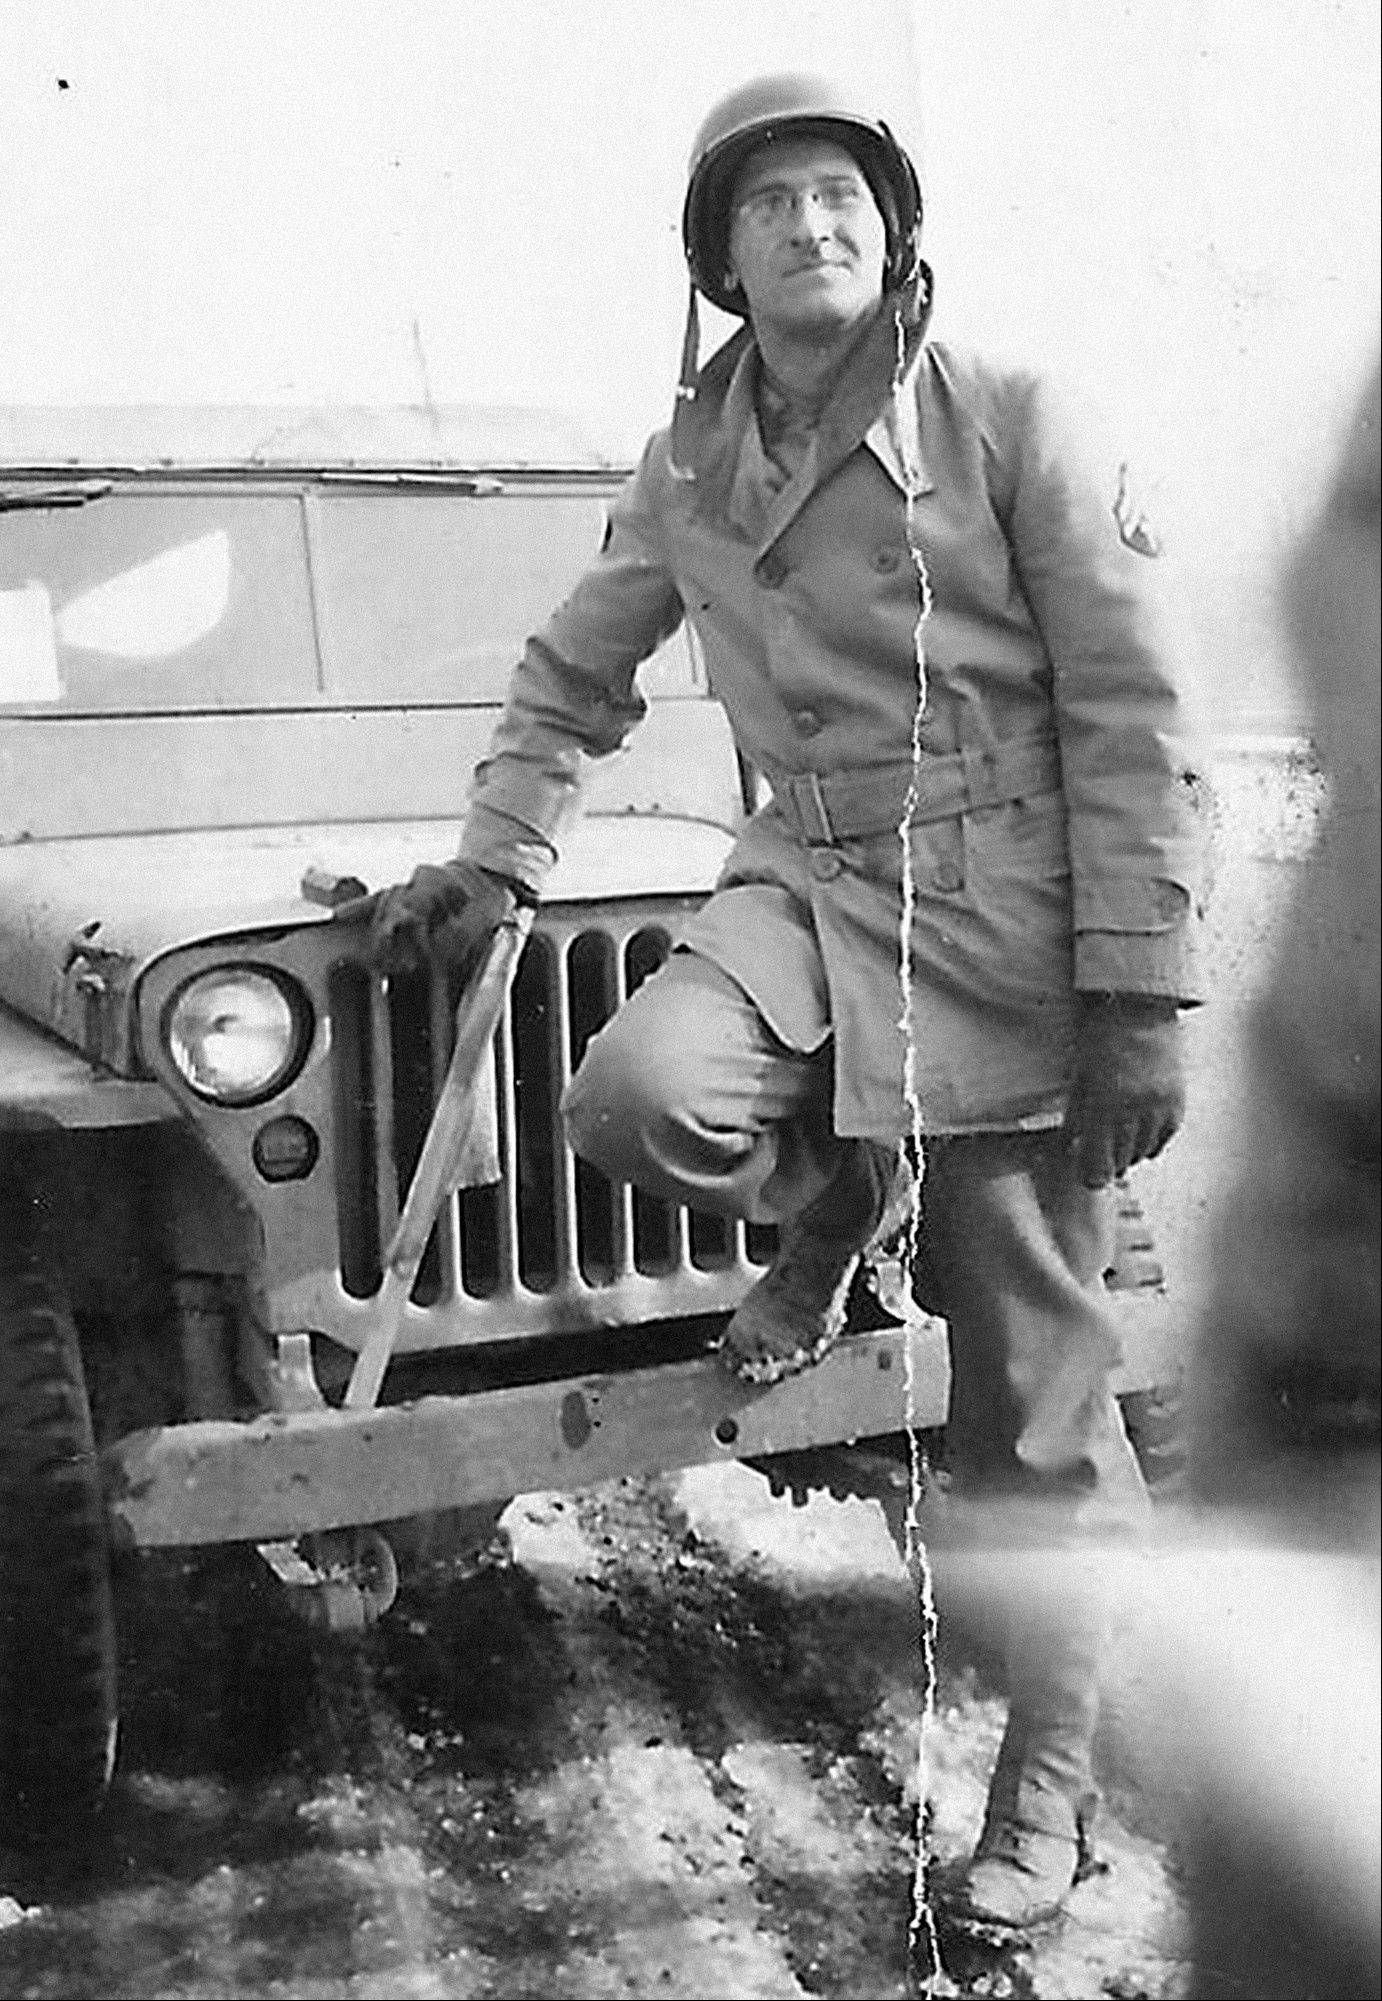 This World War II-era photo provided by the family shows Morton Tuller next to a jeep. As a young soldier in the Army Signal Corps, he served as a cryptologist with a high-security clearance post deciphering American codes sent ship-to-ship in the European and Pacific theaters. For decades, he told no one, not even his wife, about his work on Navy ships that landed in Sicily, southern France, north Africa, Okinawa and Iwo Jima.